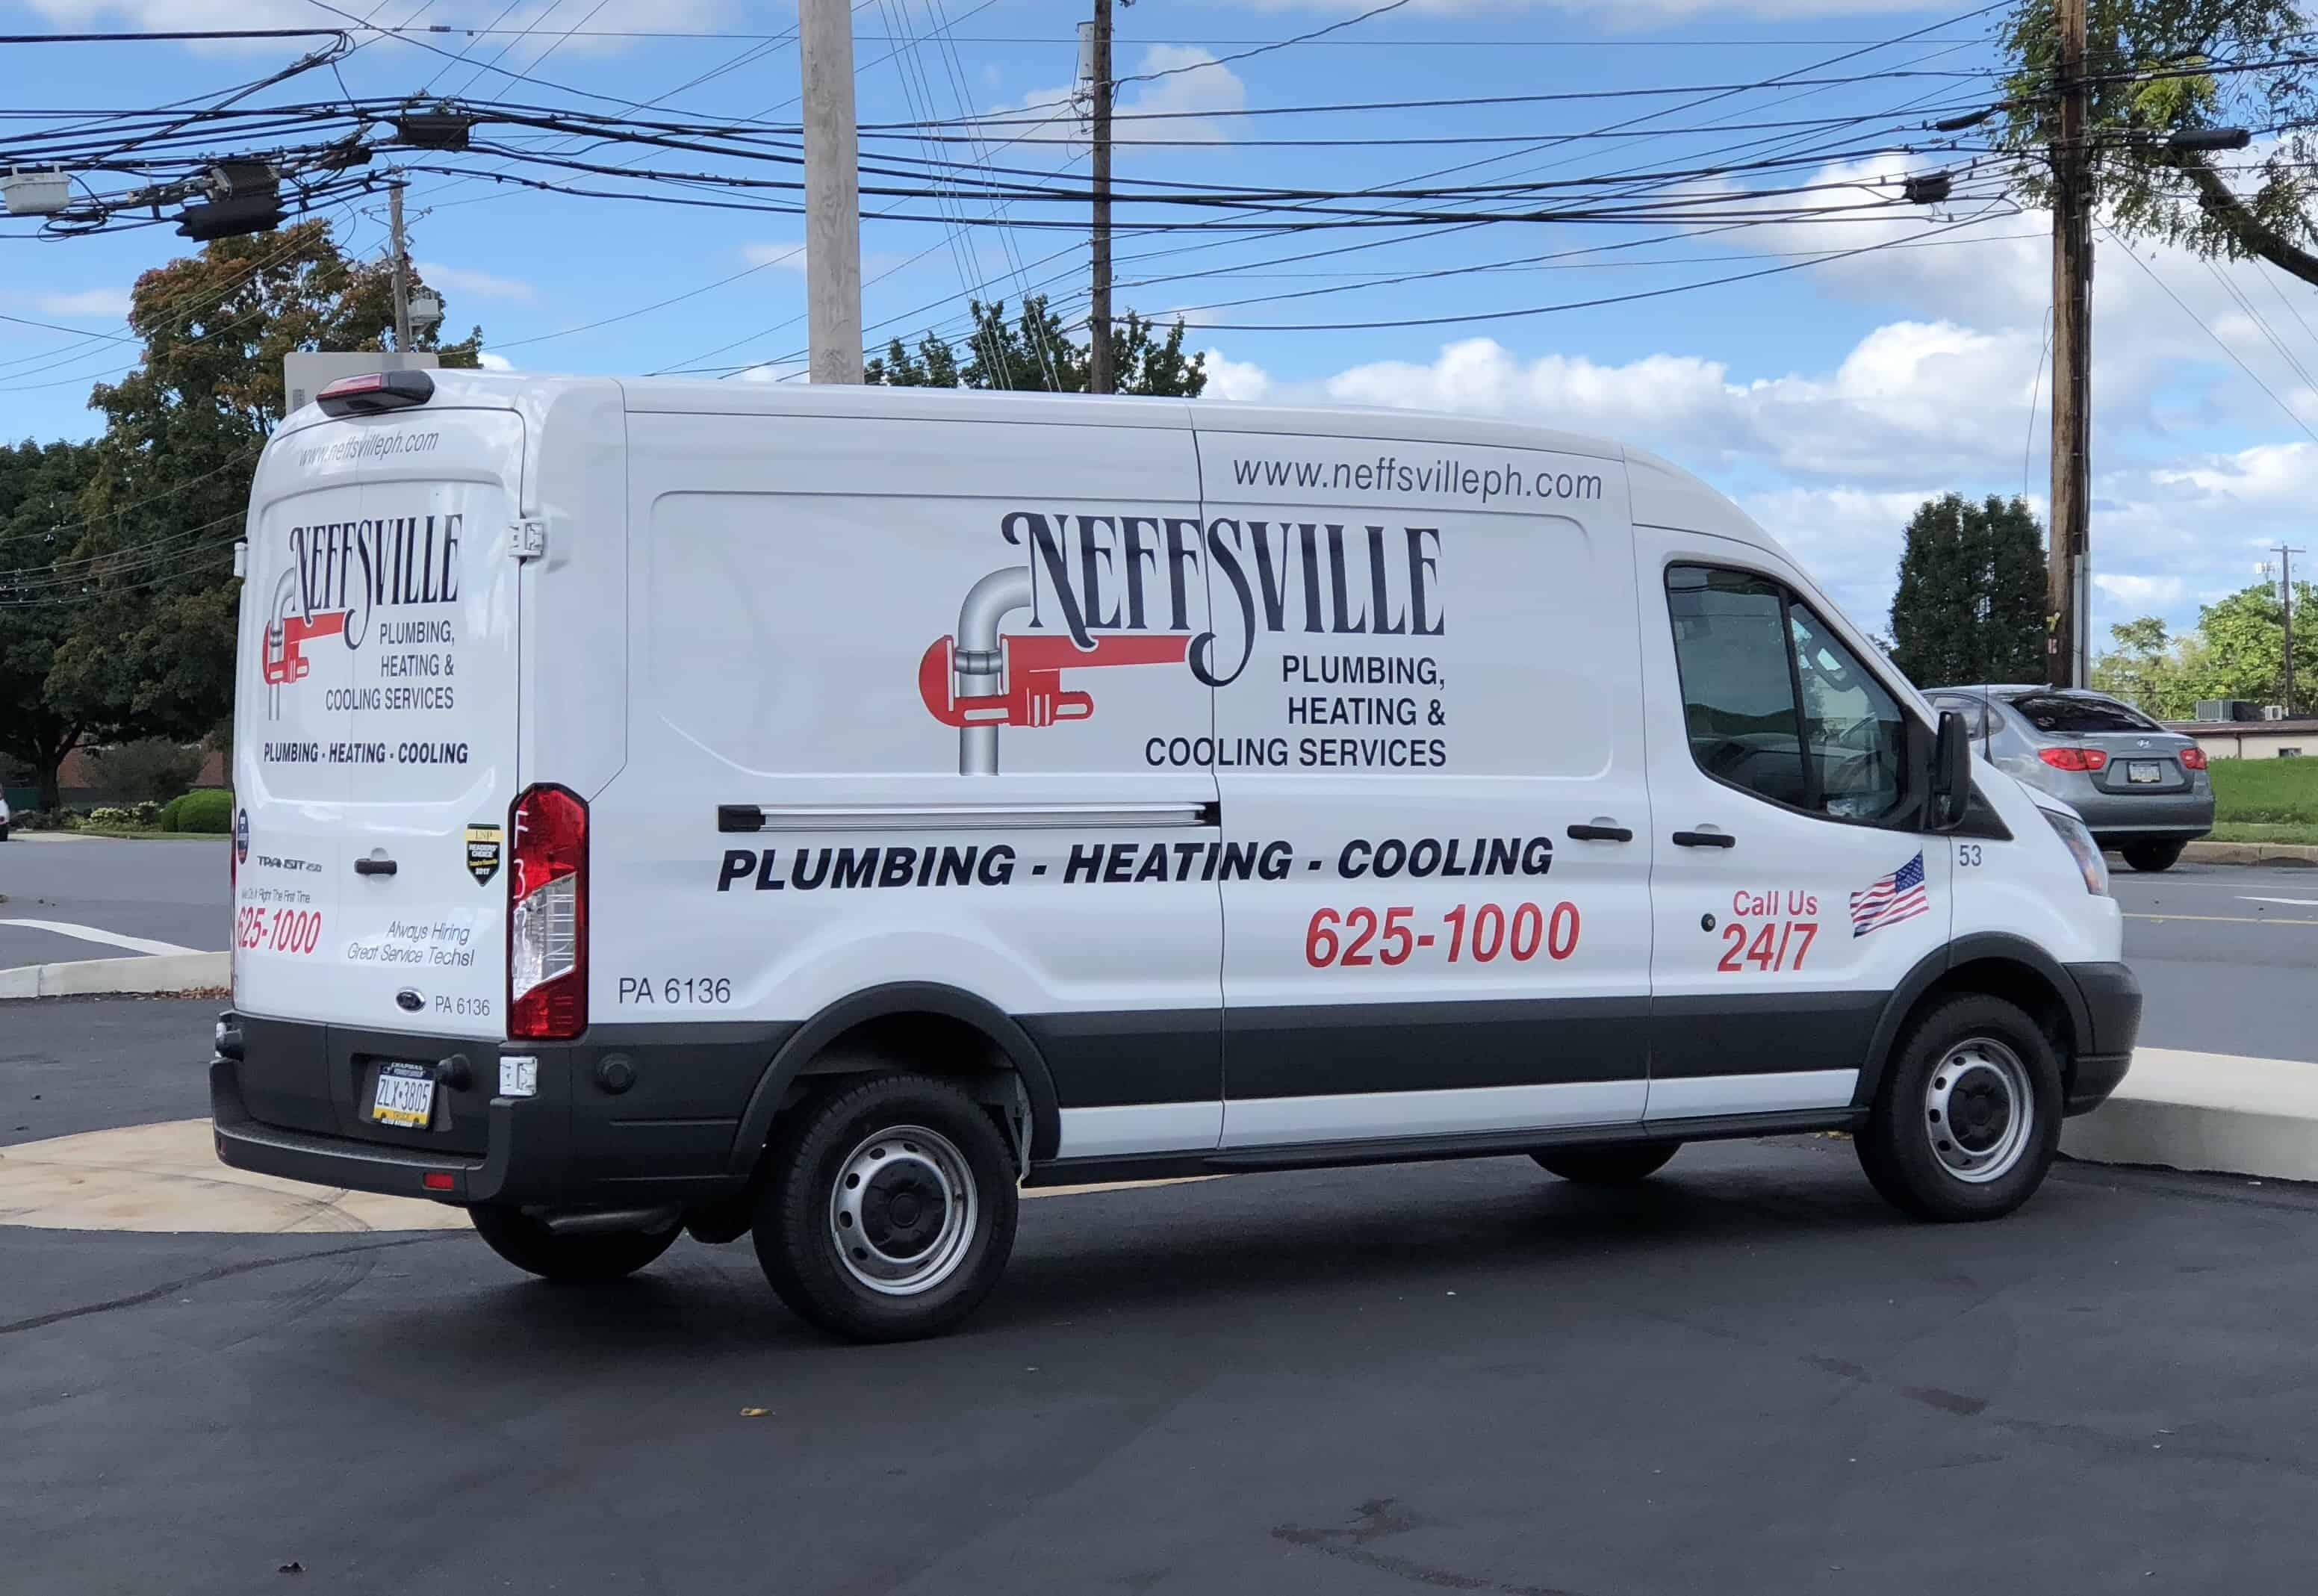 As A Family Owned Business For Over 75 Years Neffsville Plumbing Heating Cooling Is Committed To Serving Our Customers By Providing The Best Work And